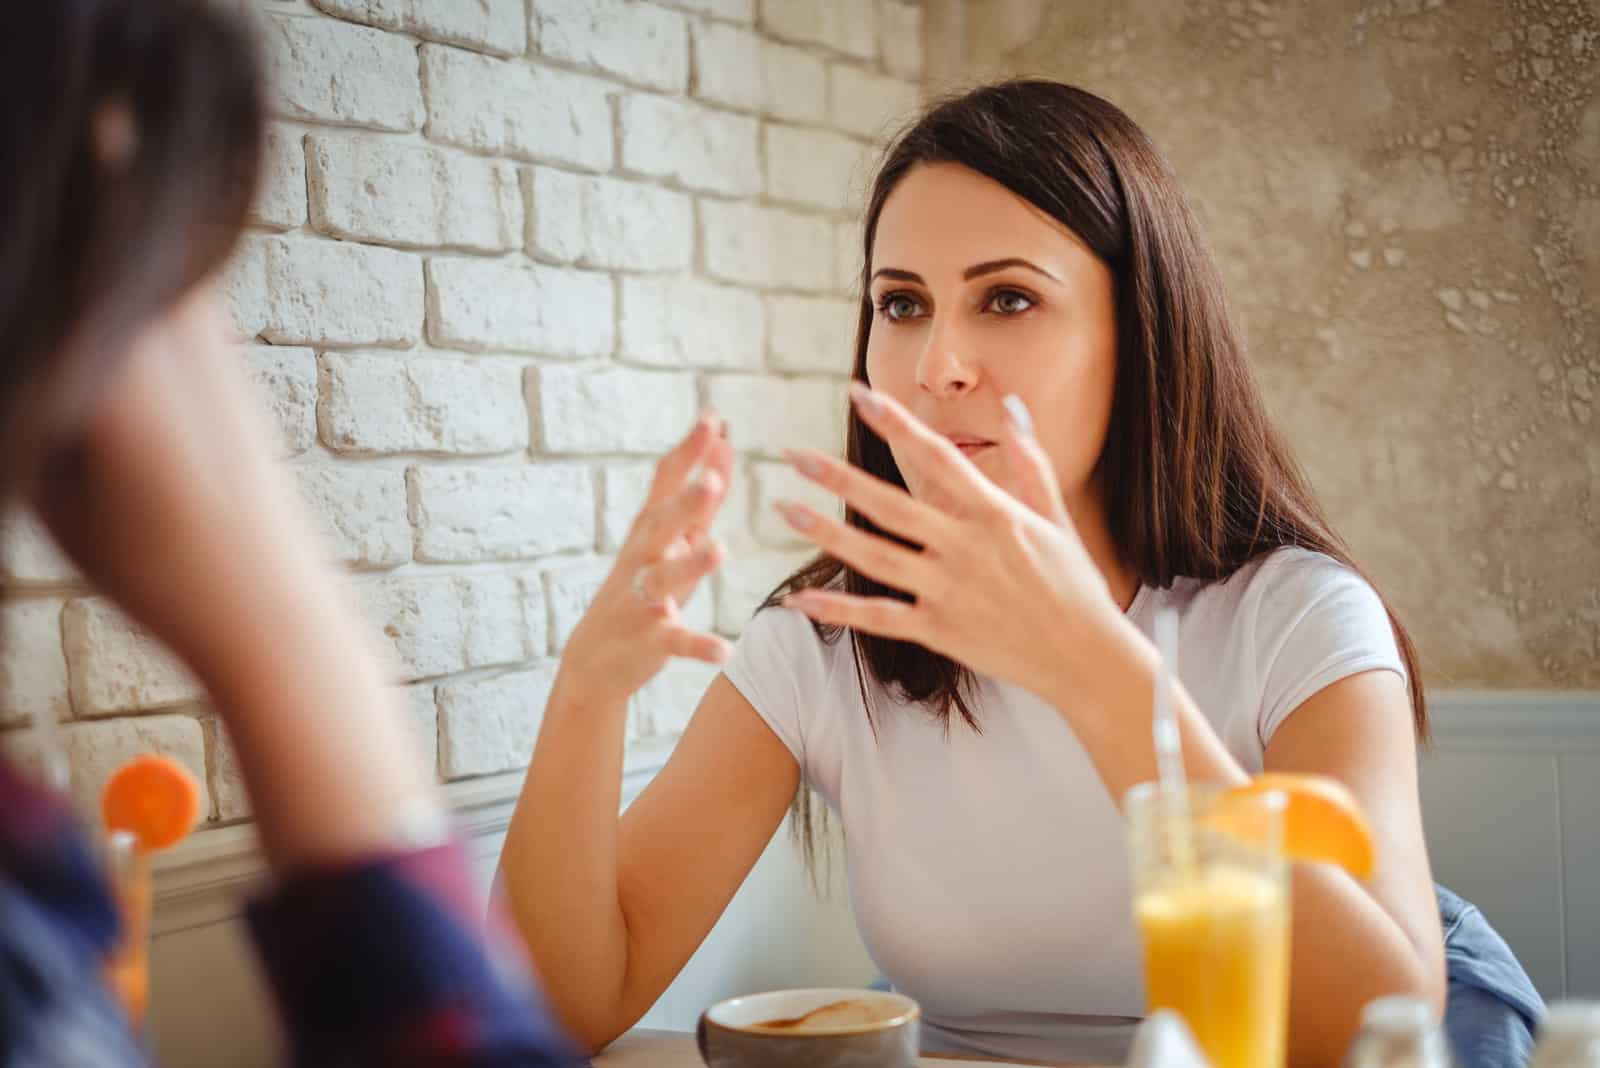 Girl explaining something with hands to her friend in the restaurant